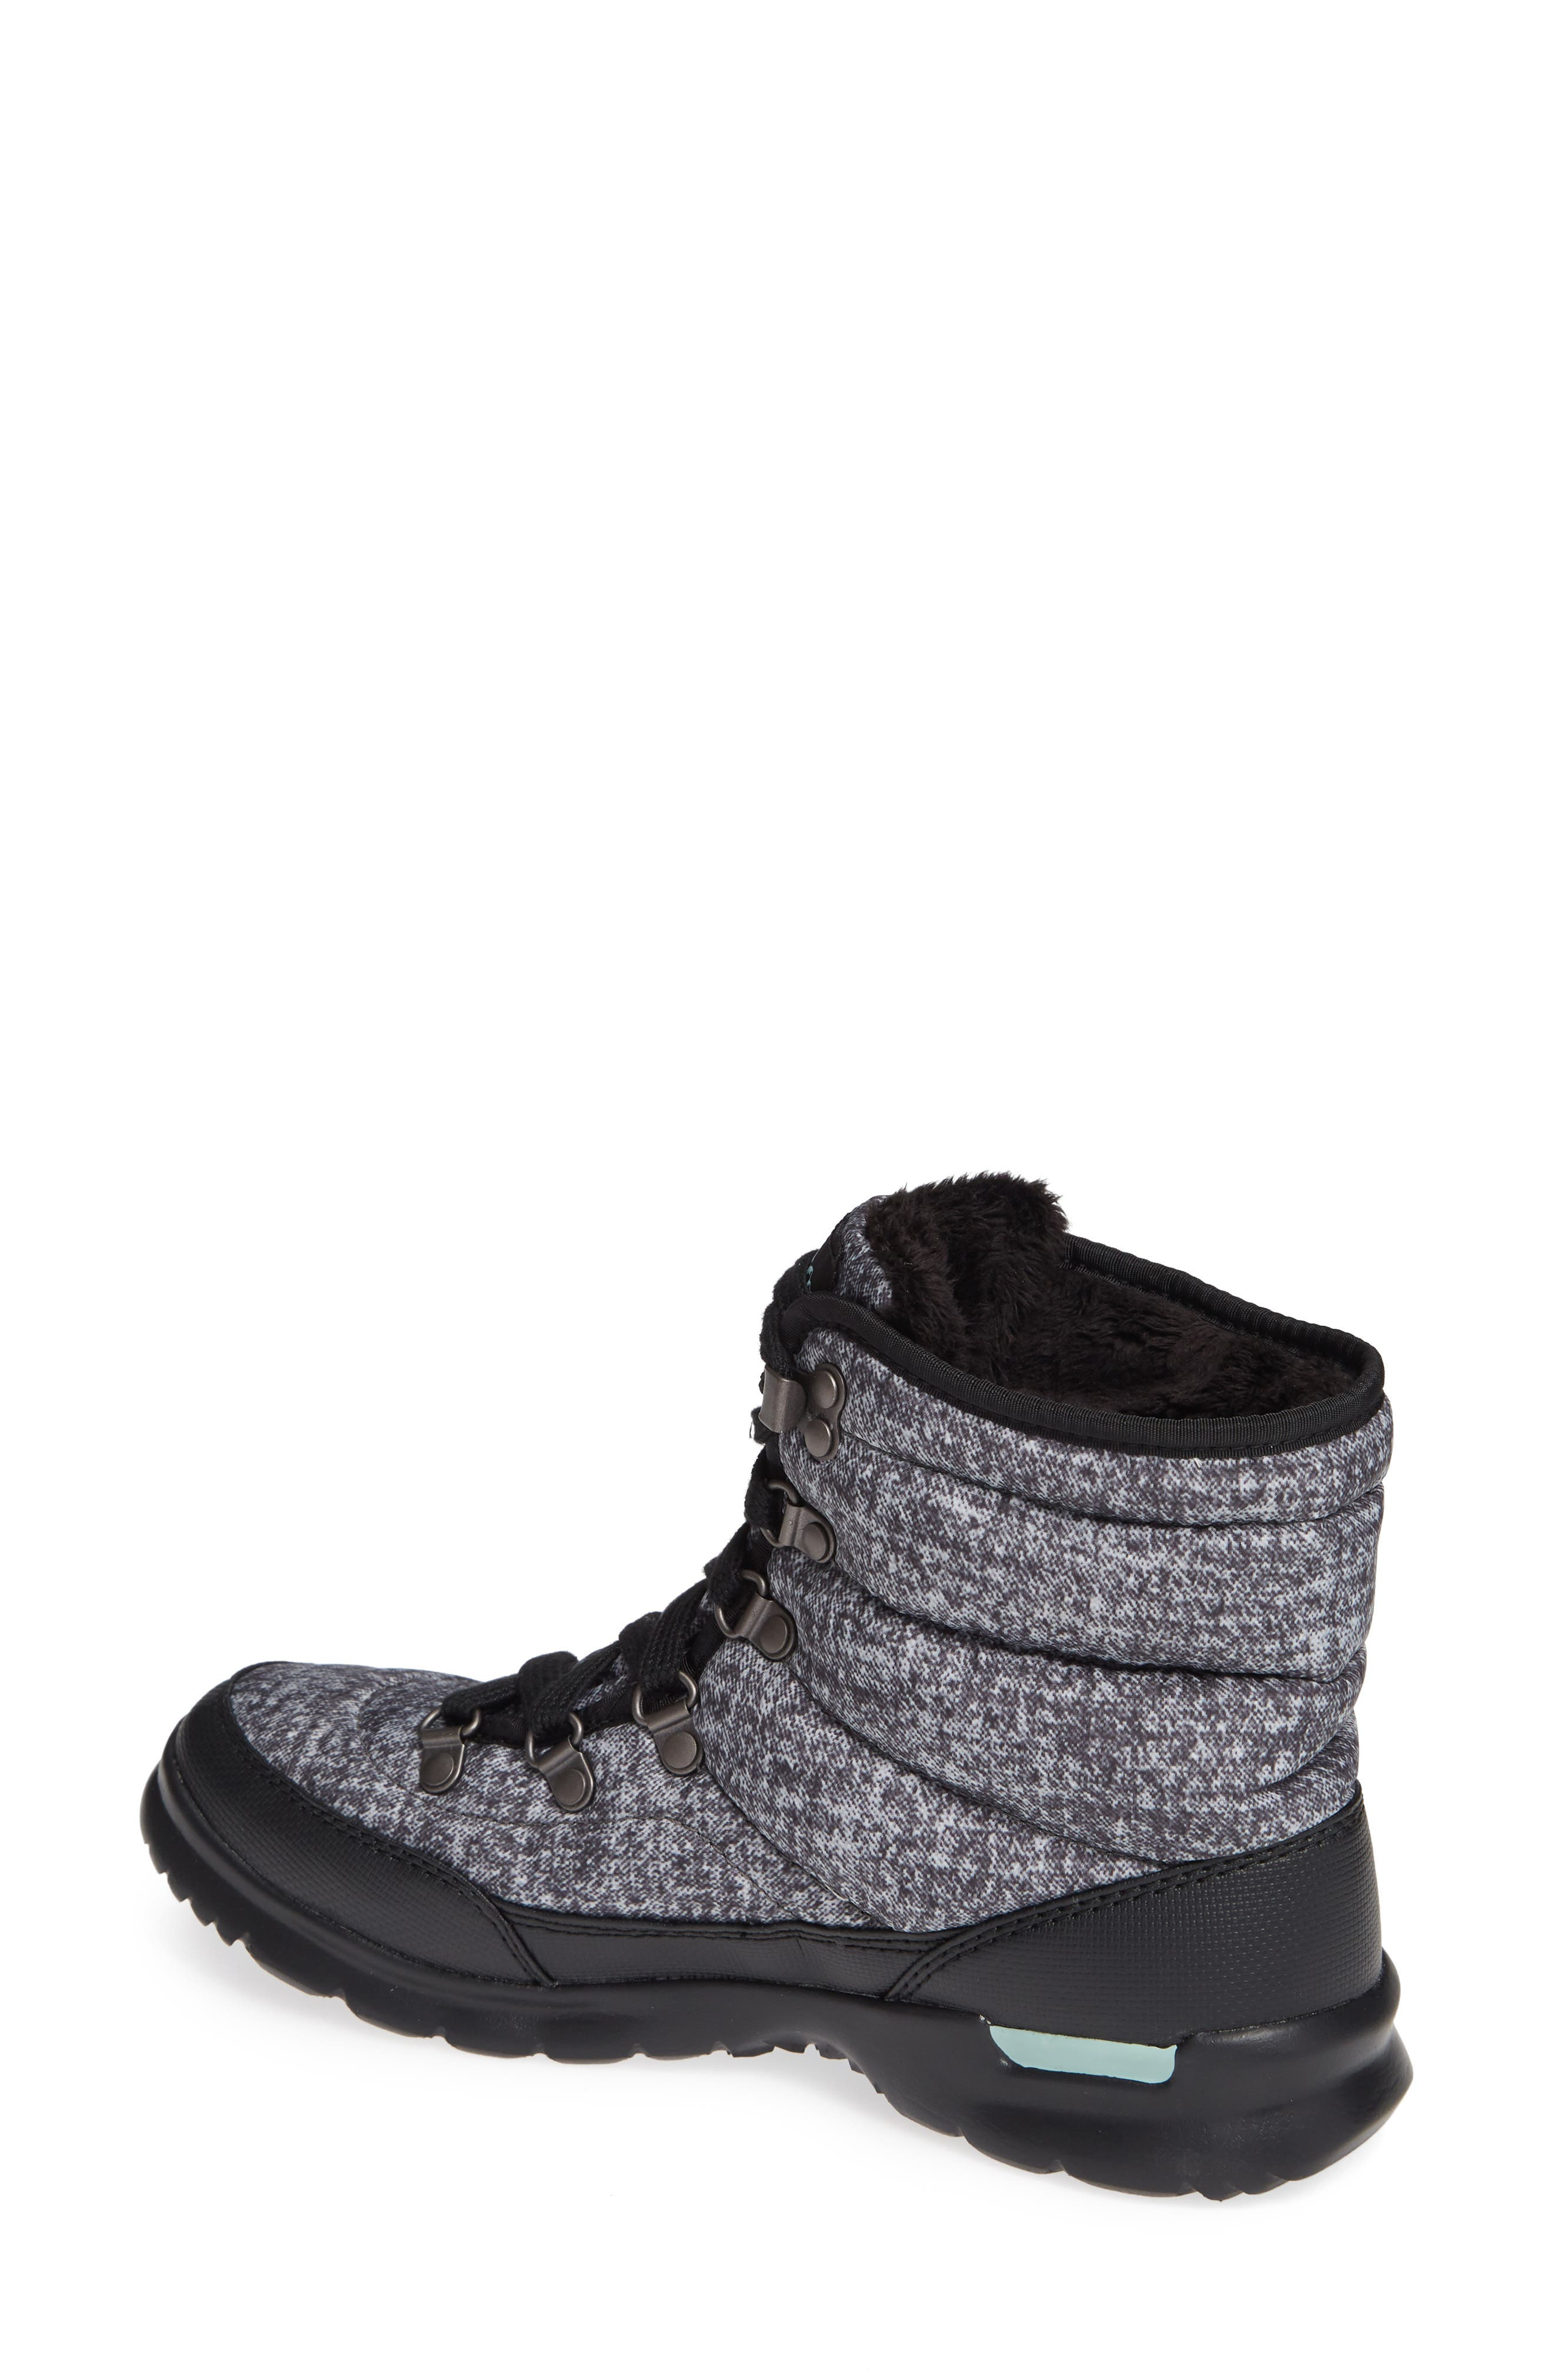 Lace II ThermoBall<sup>™</sup> Insulated Winter Boot,                             Alternate thumbnail 2, color,                             HOUNDS TOOTH PRINT/ BLUE HAZE